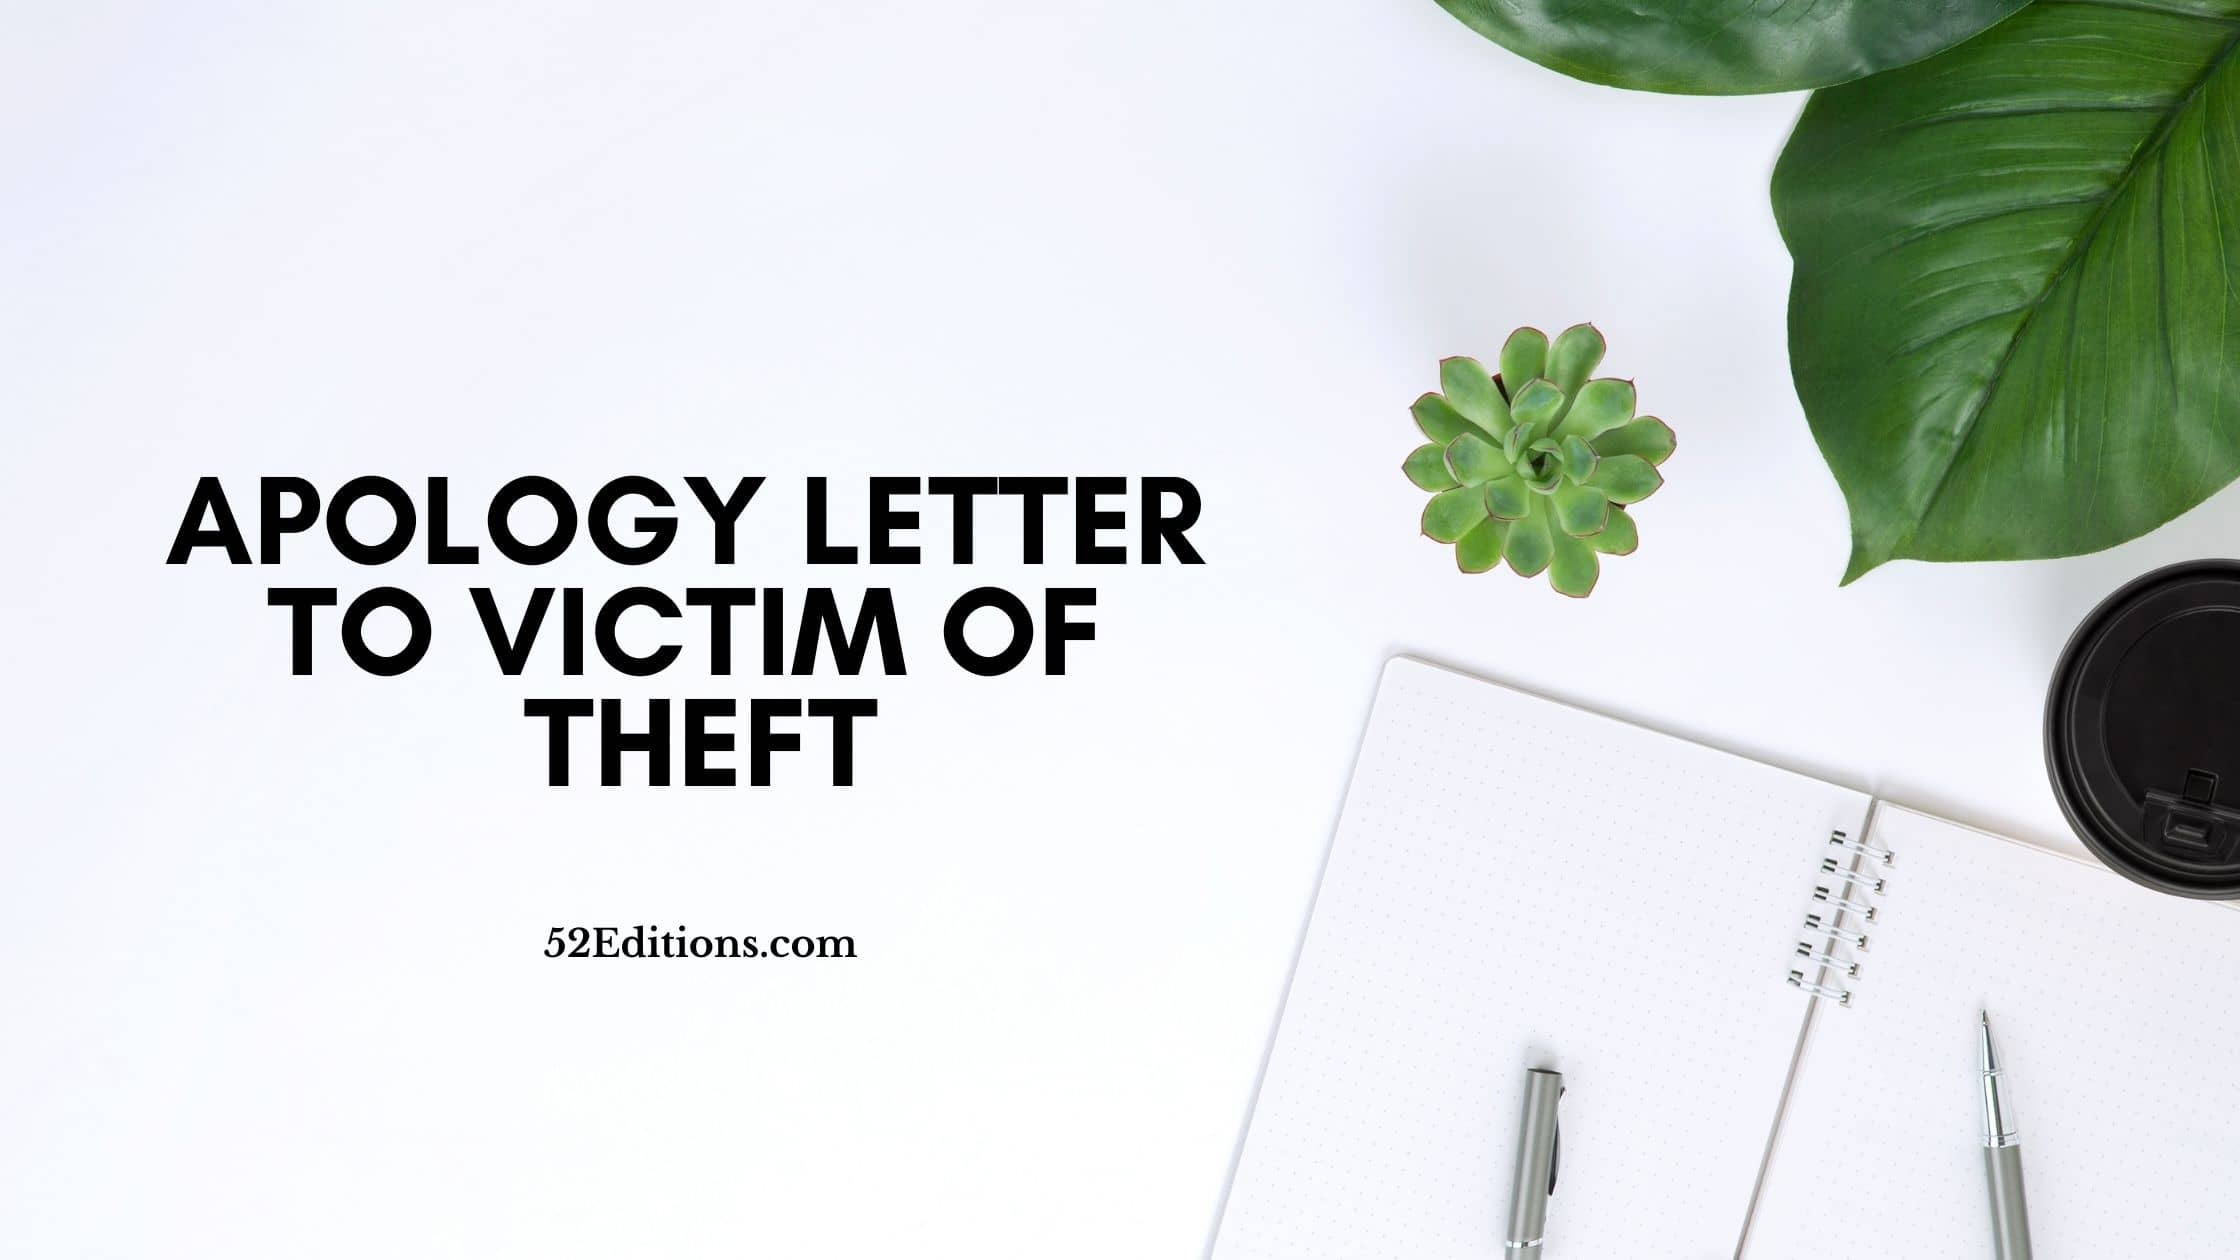 Apology Letter To Victim of Theft Sample // FREE Letter Templates